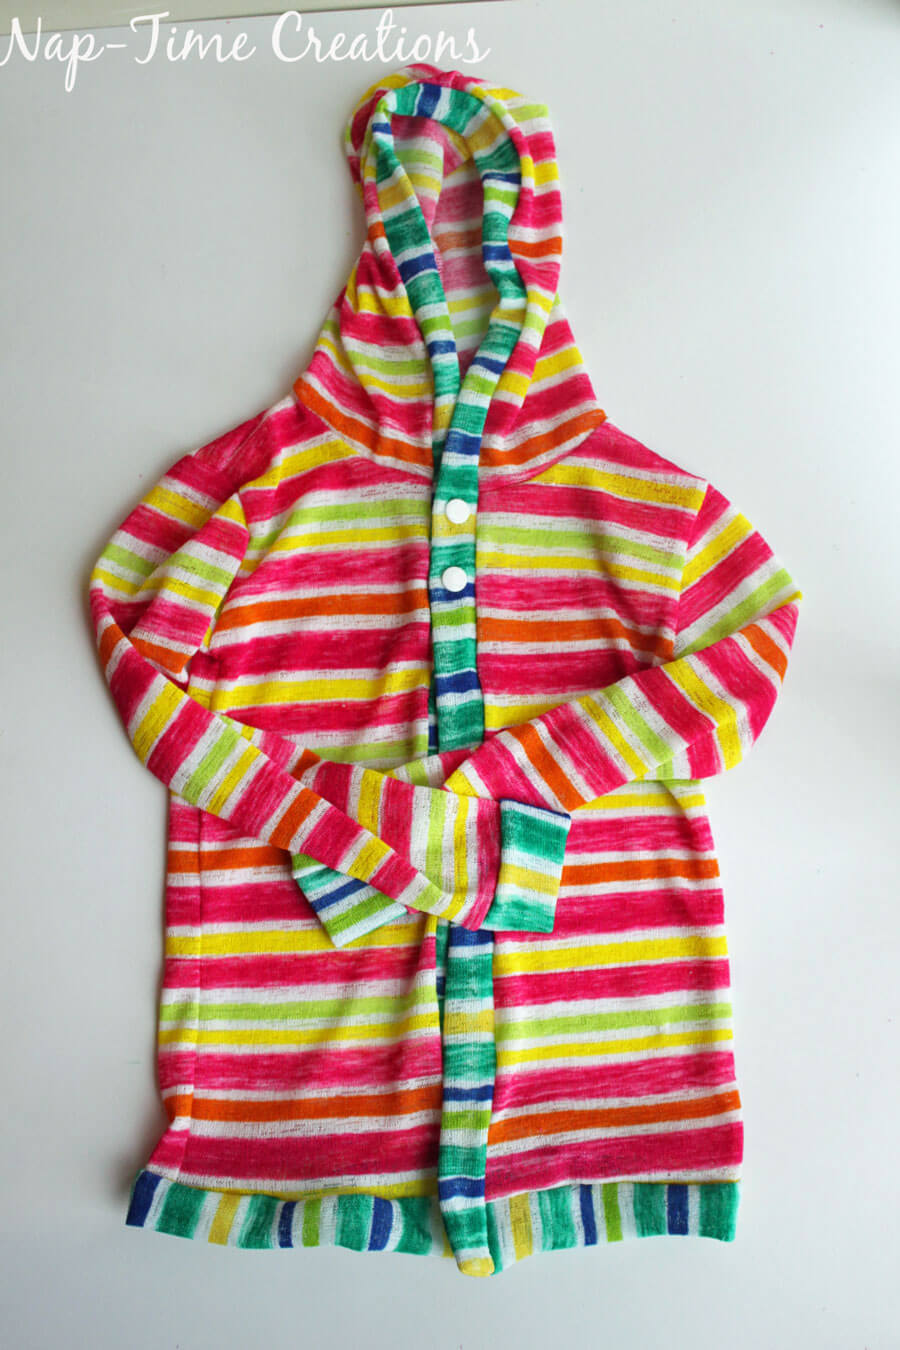 Hooded-T-Shirt-Free-Pattern-for-Kids-5